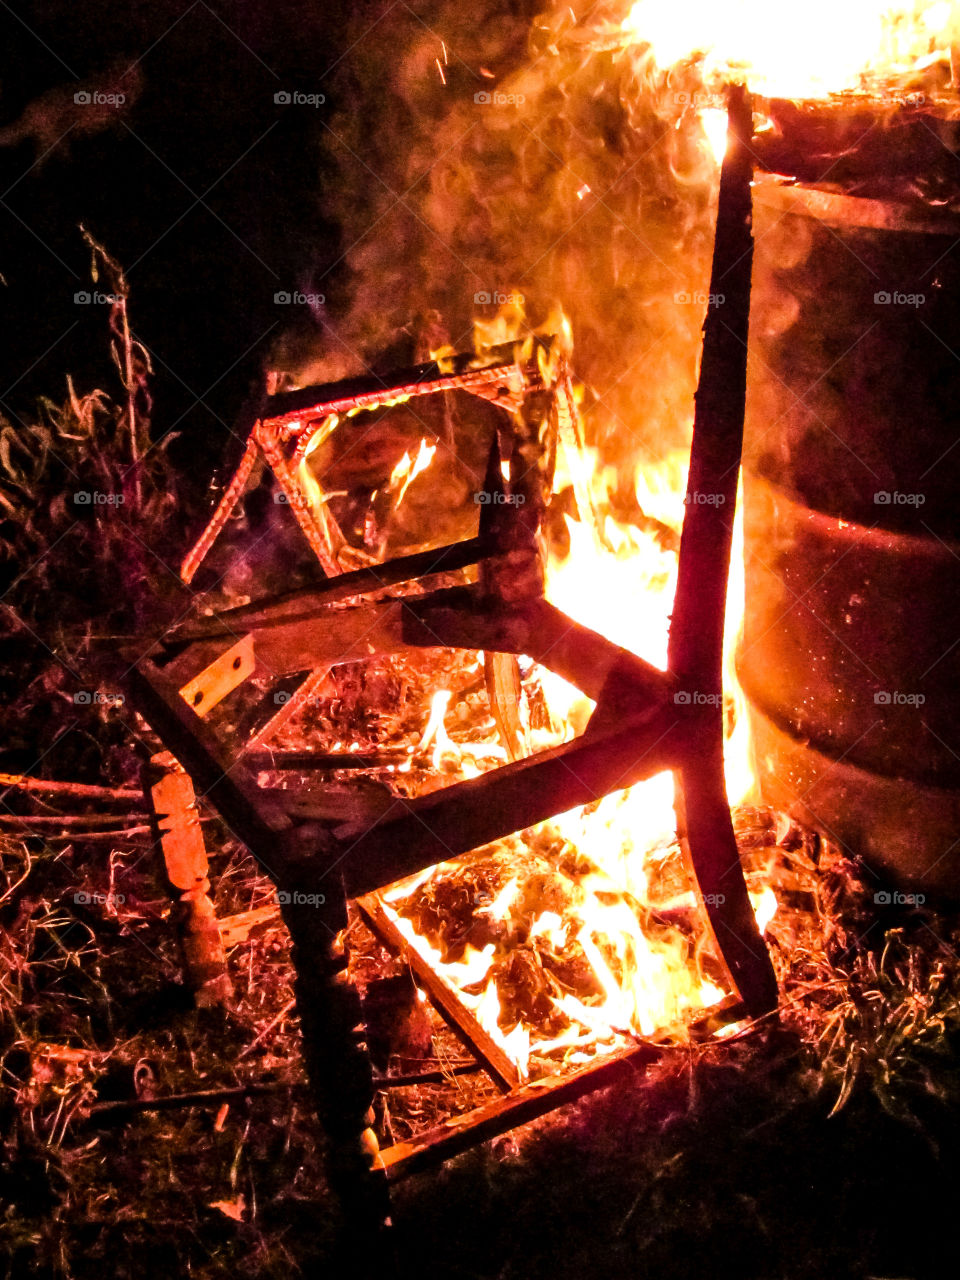 wooden chair on fire at night outdoors